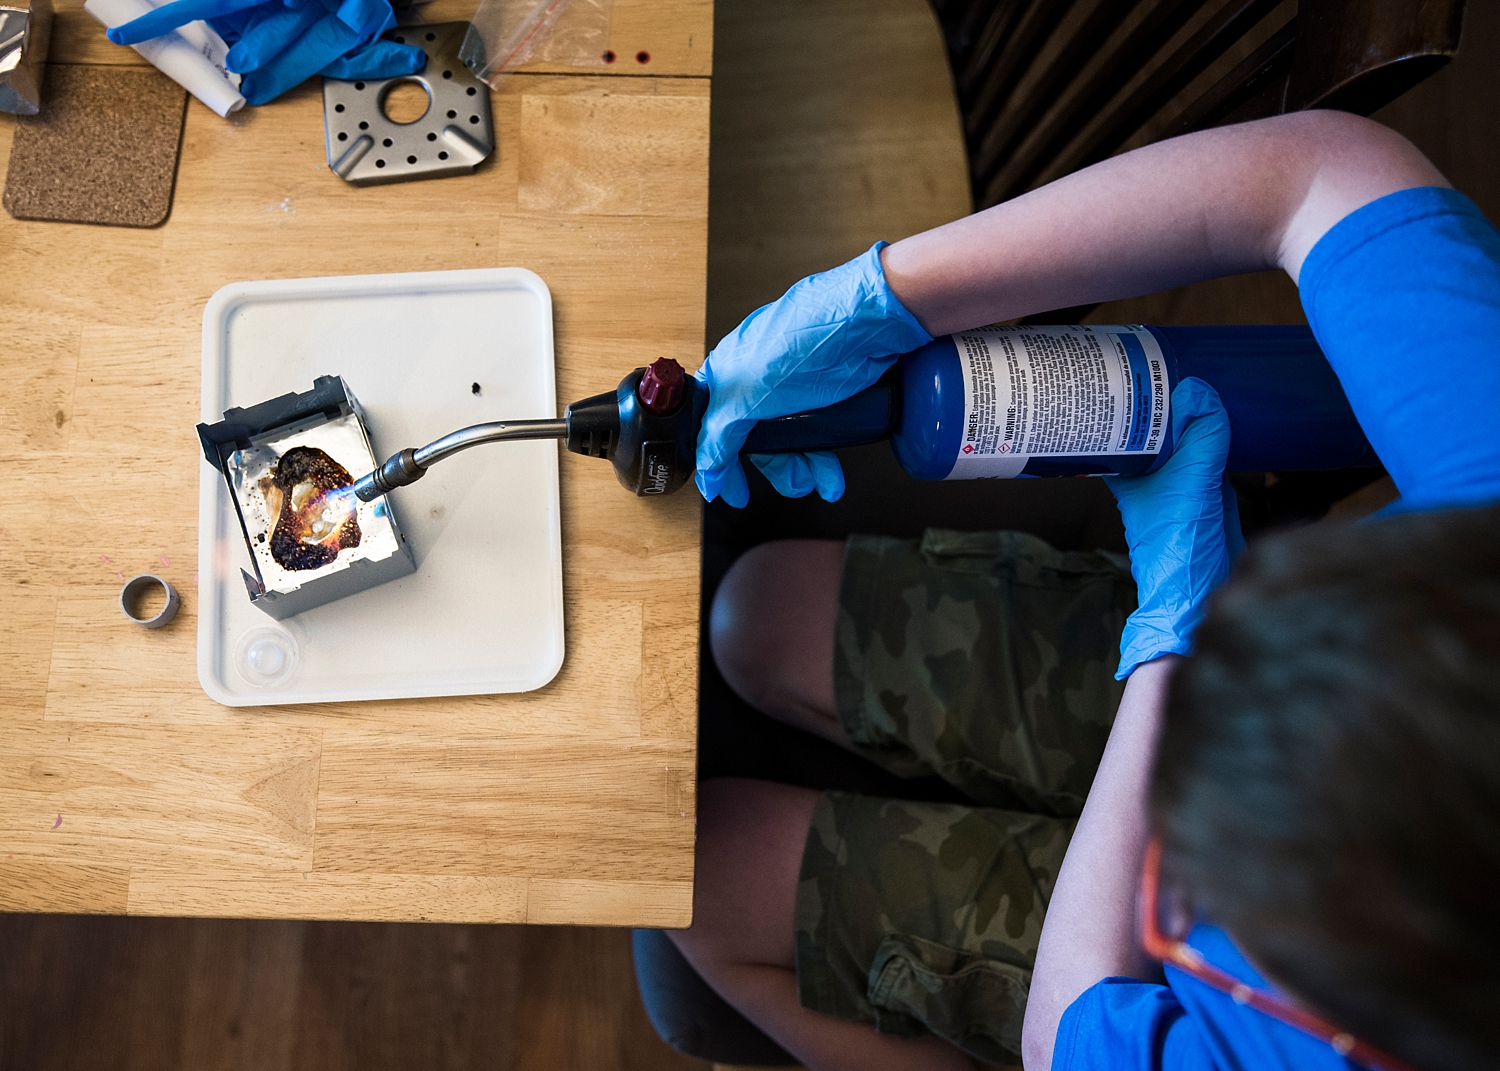 Why homeschool your kid? So that when they ask to use the blow torch to do an experiment you can watch how much fun they have!